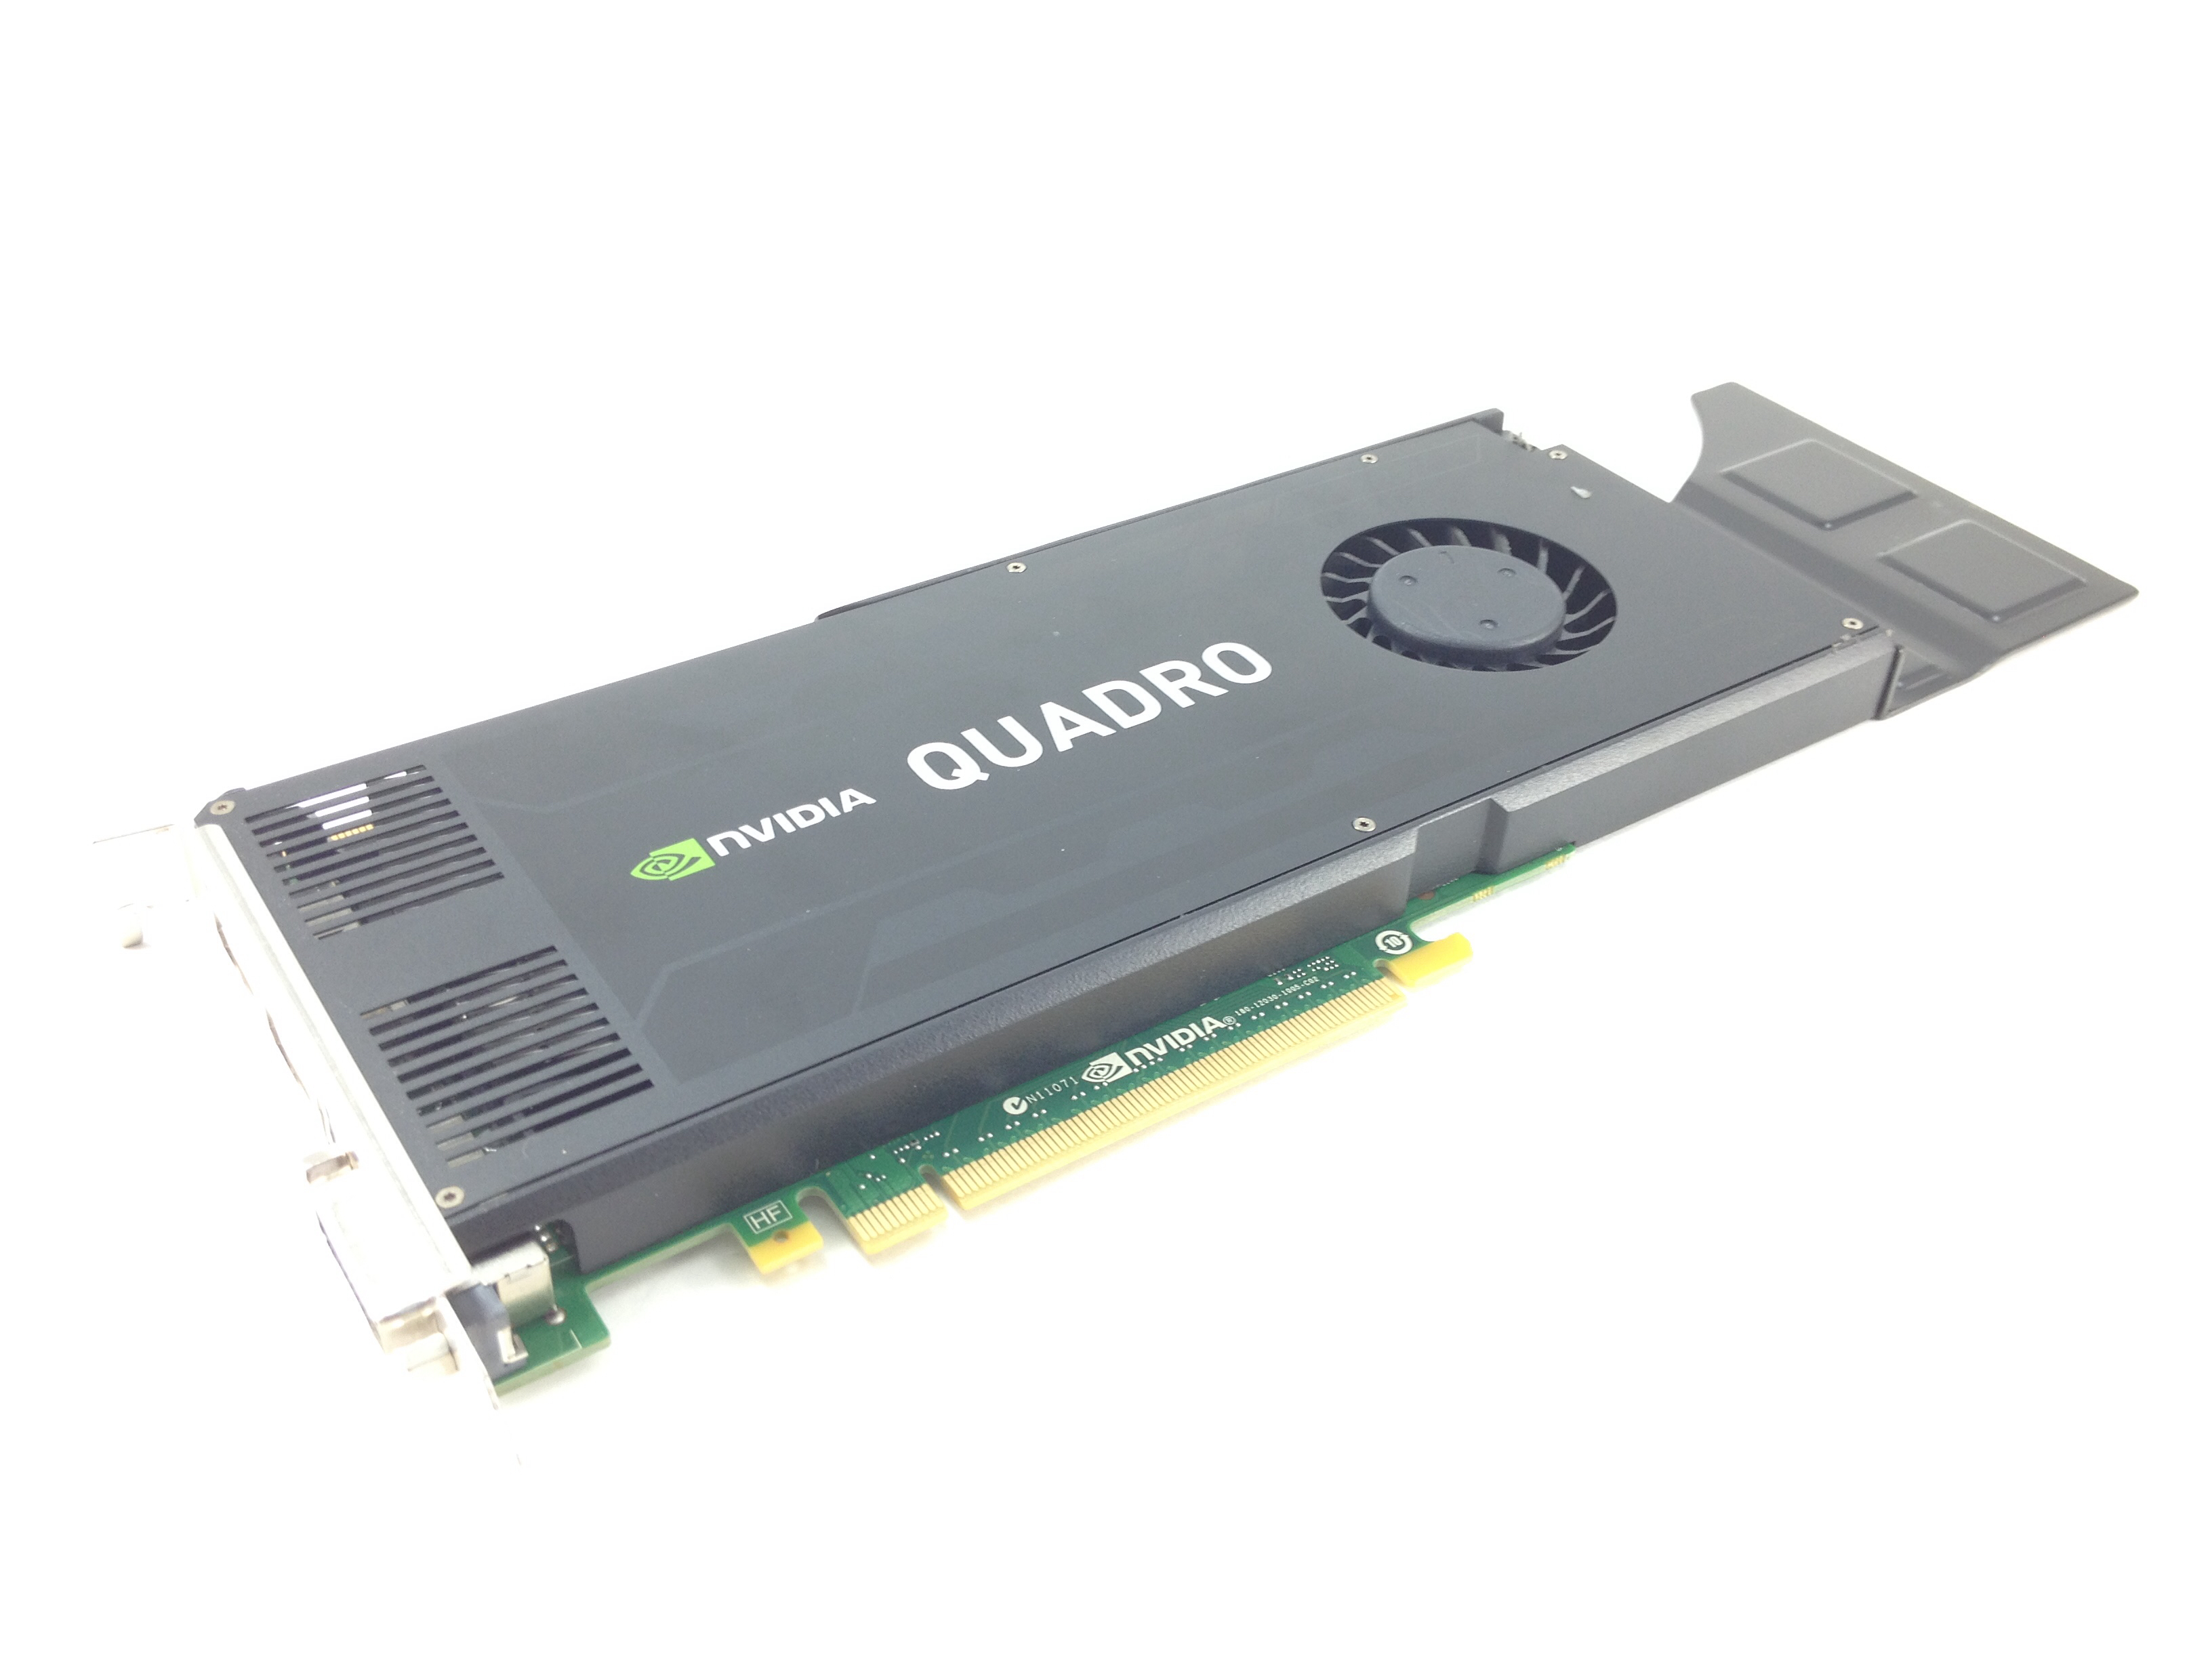 IBM NVIDIA QUADRO K4000 3GB GDDR5 PCI-E X16 VIDEO CARD (03T8312)